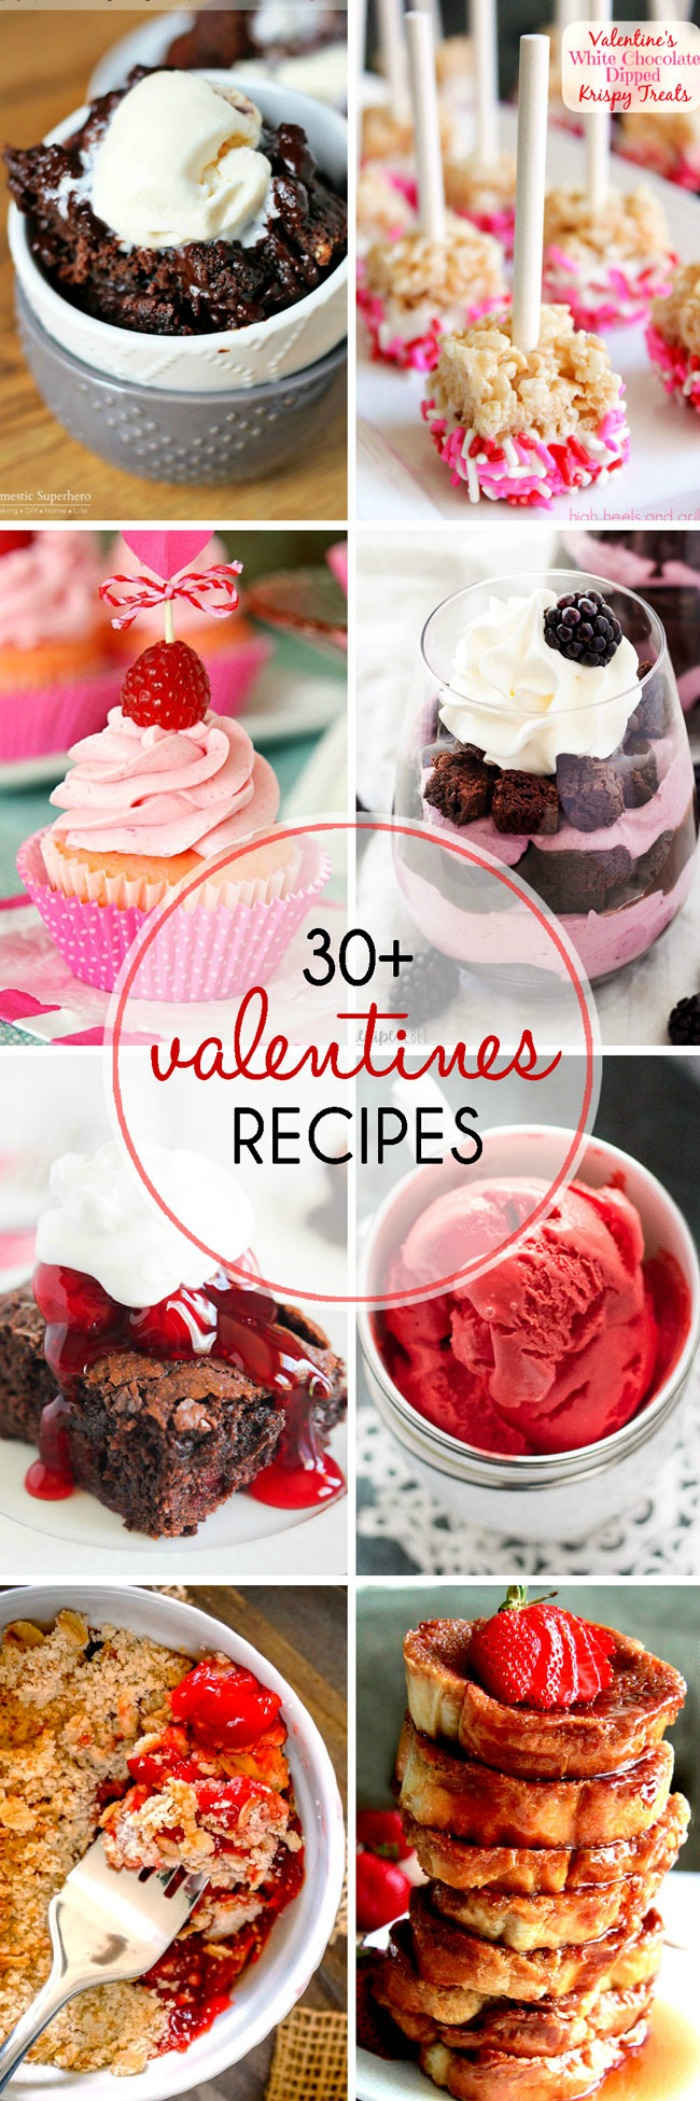 Valentine's Day Recipes everyone will love! Enjoy a nice date night for two or the whole family with these special holiday recipes! | The Love Nerds